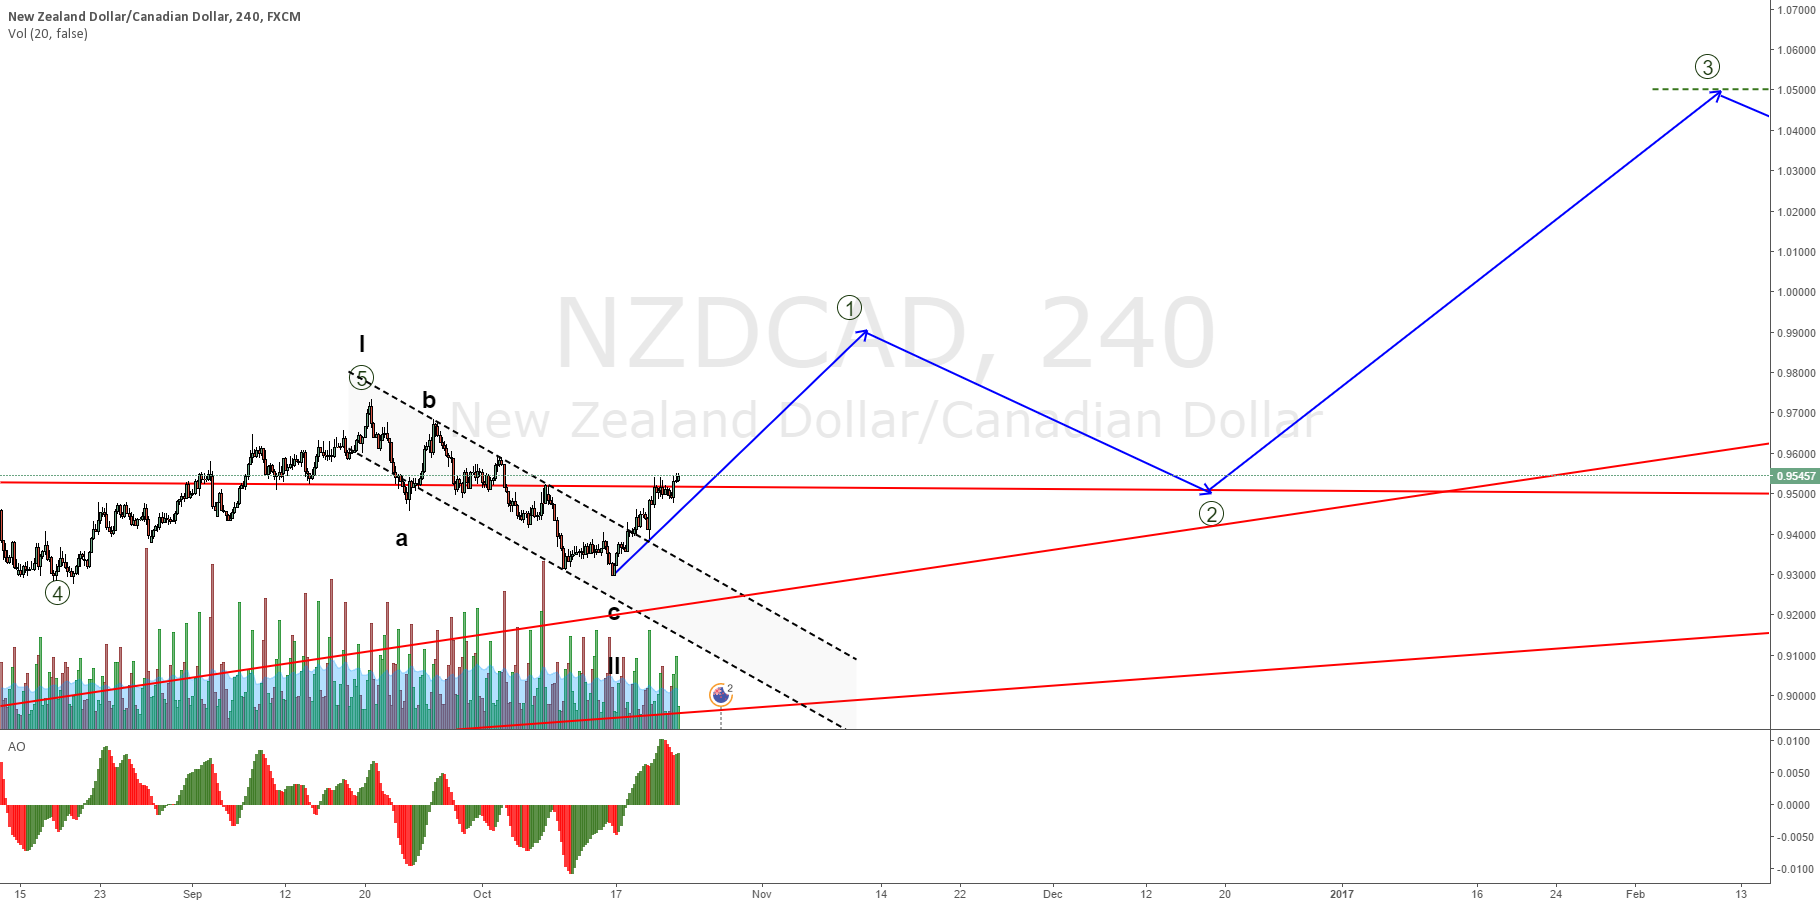 NZDCAD wave 1 correction might have ended